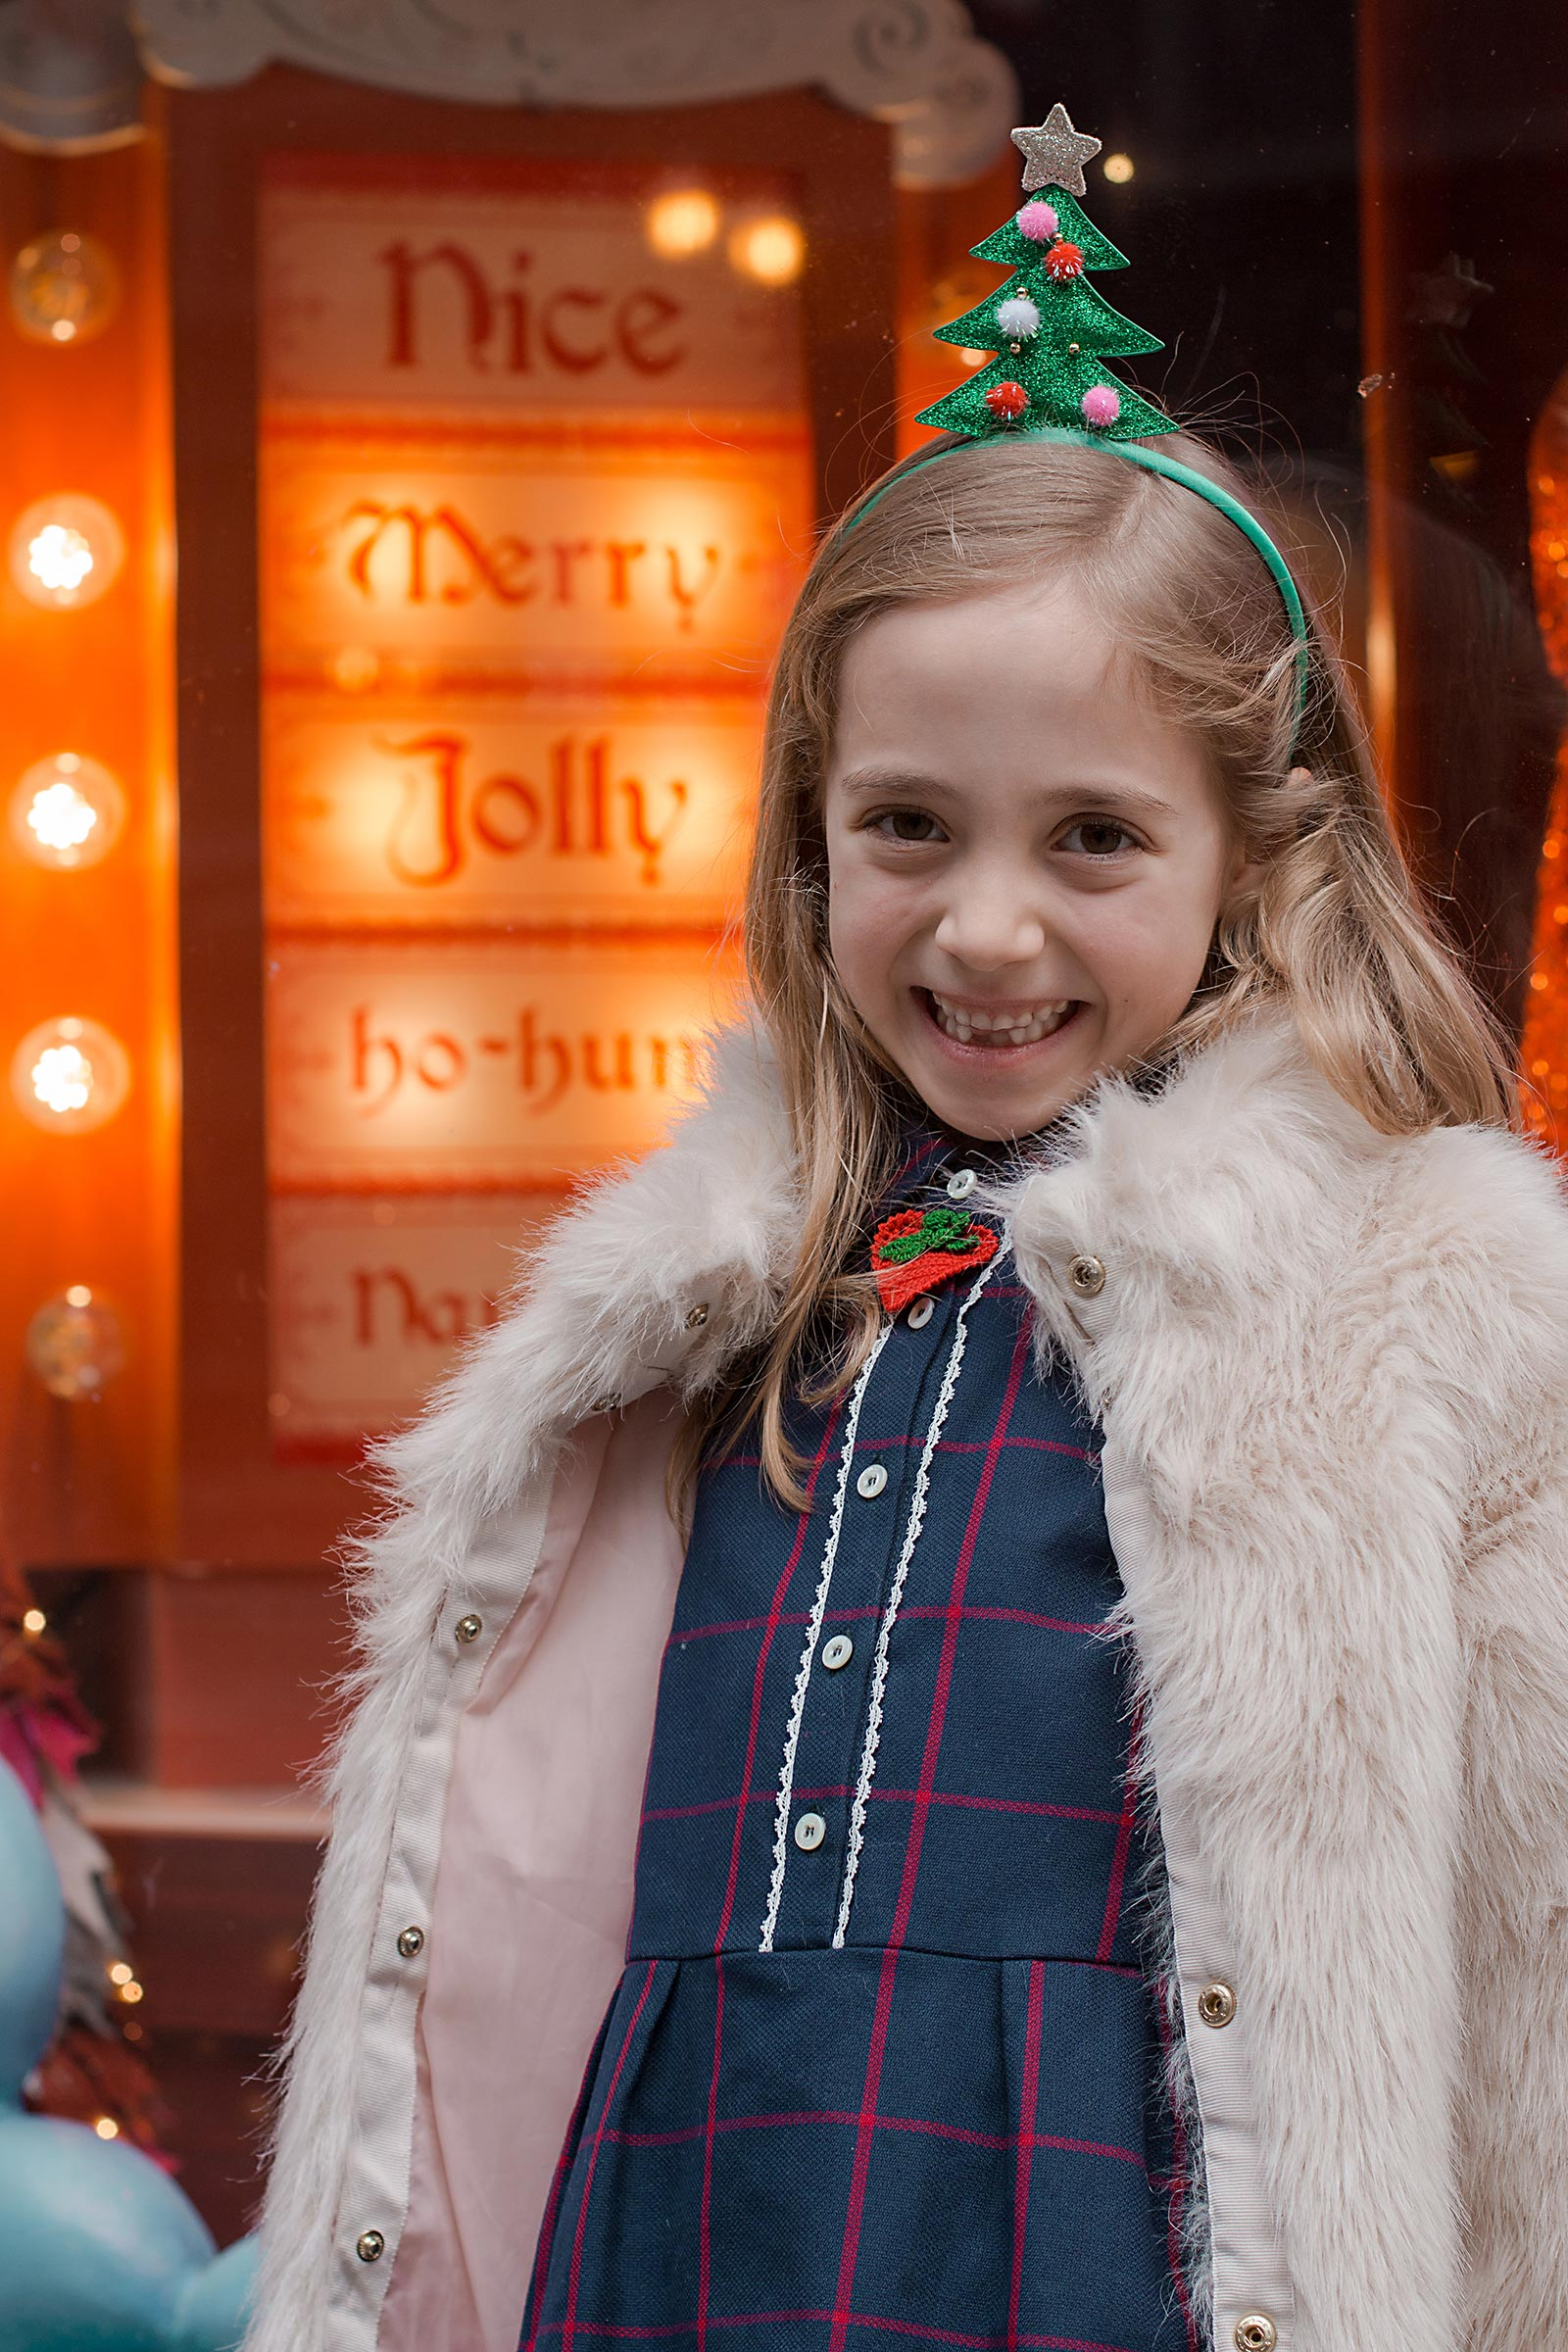 Anna Roufos Sosa of Noir Friday shares the best gifts for kids this holiday season.